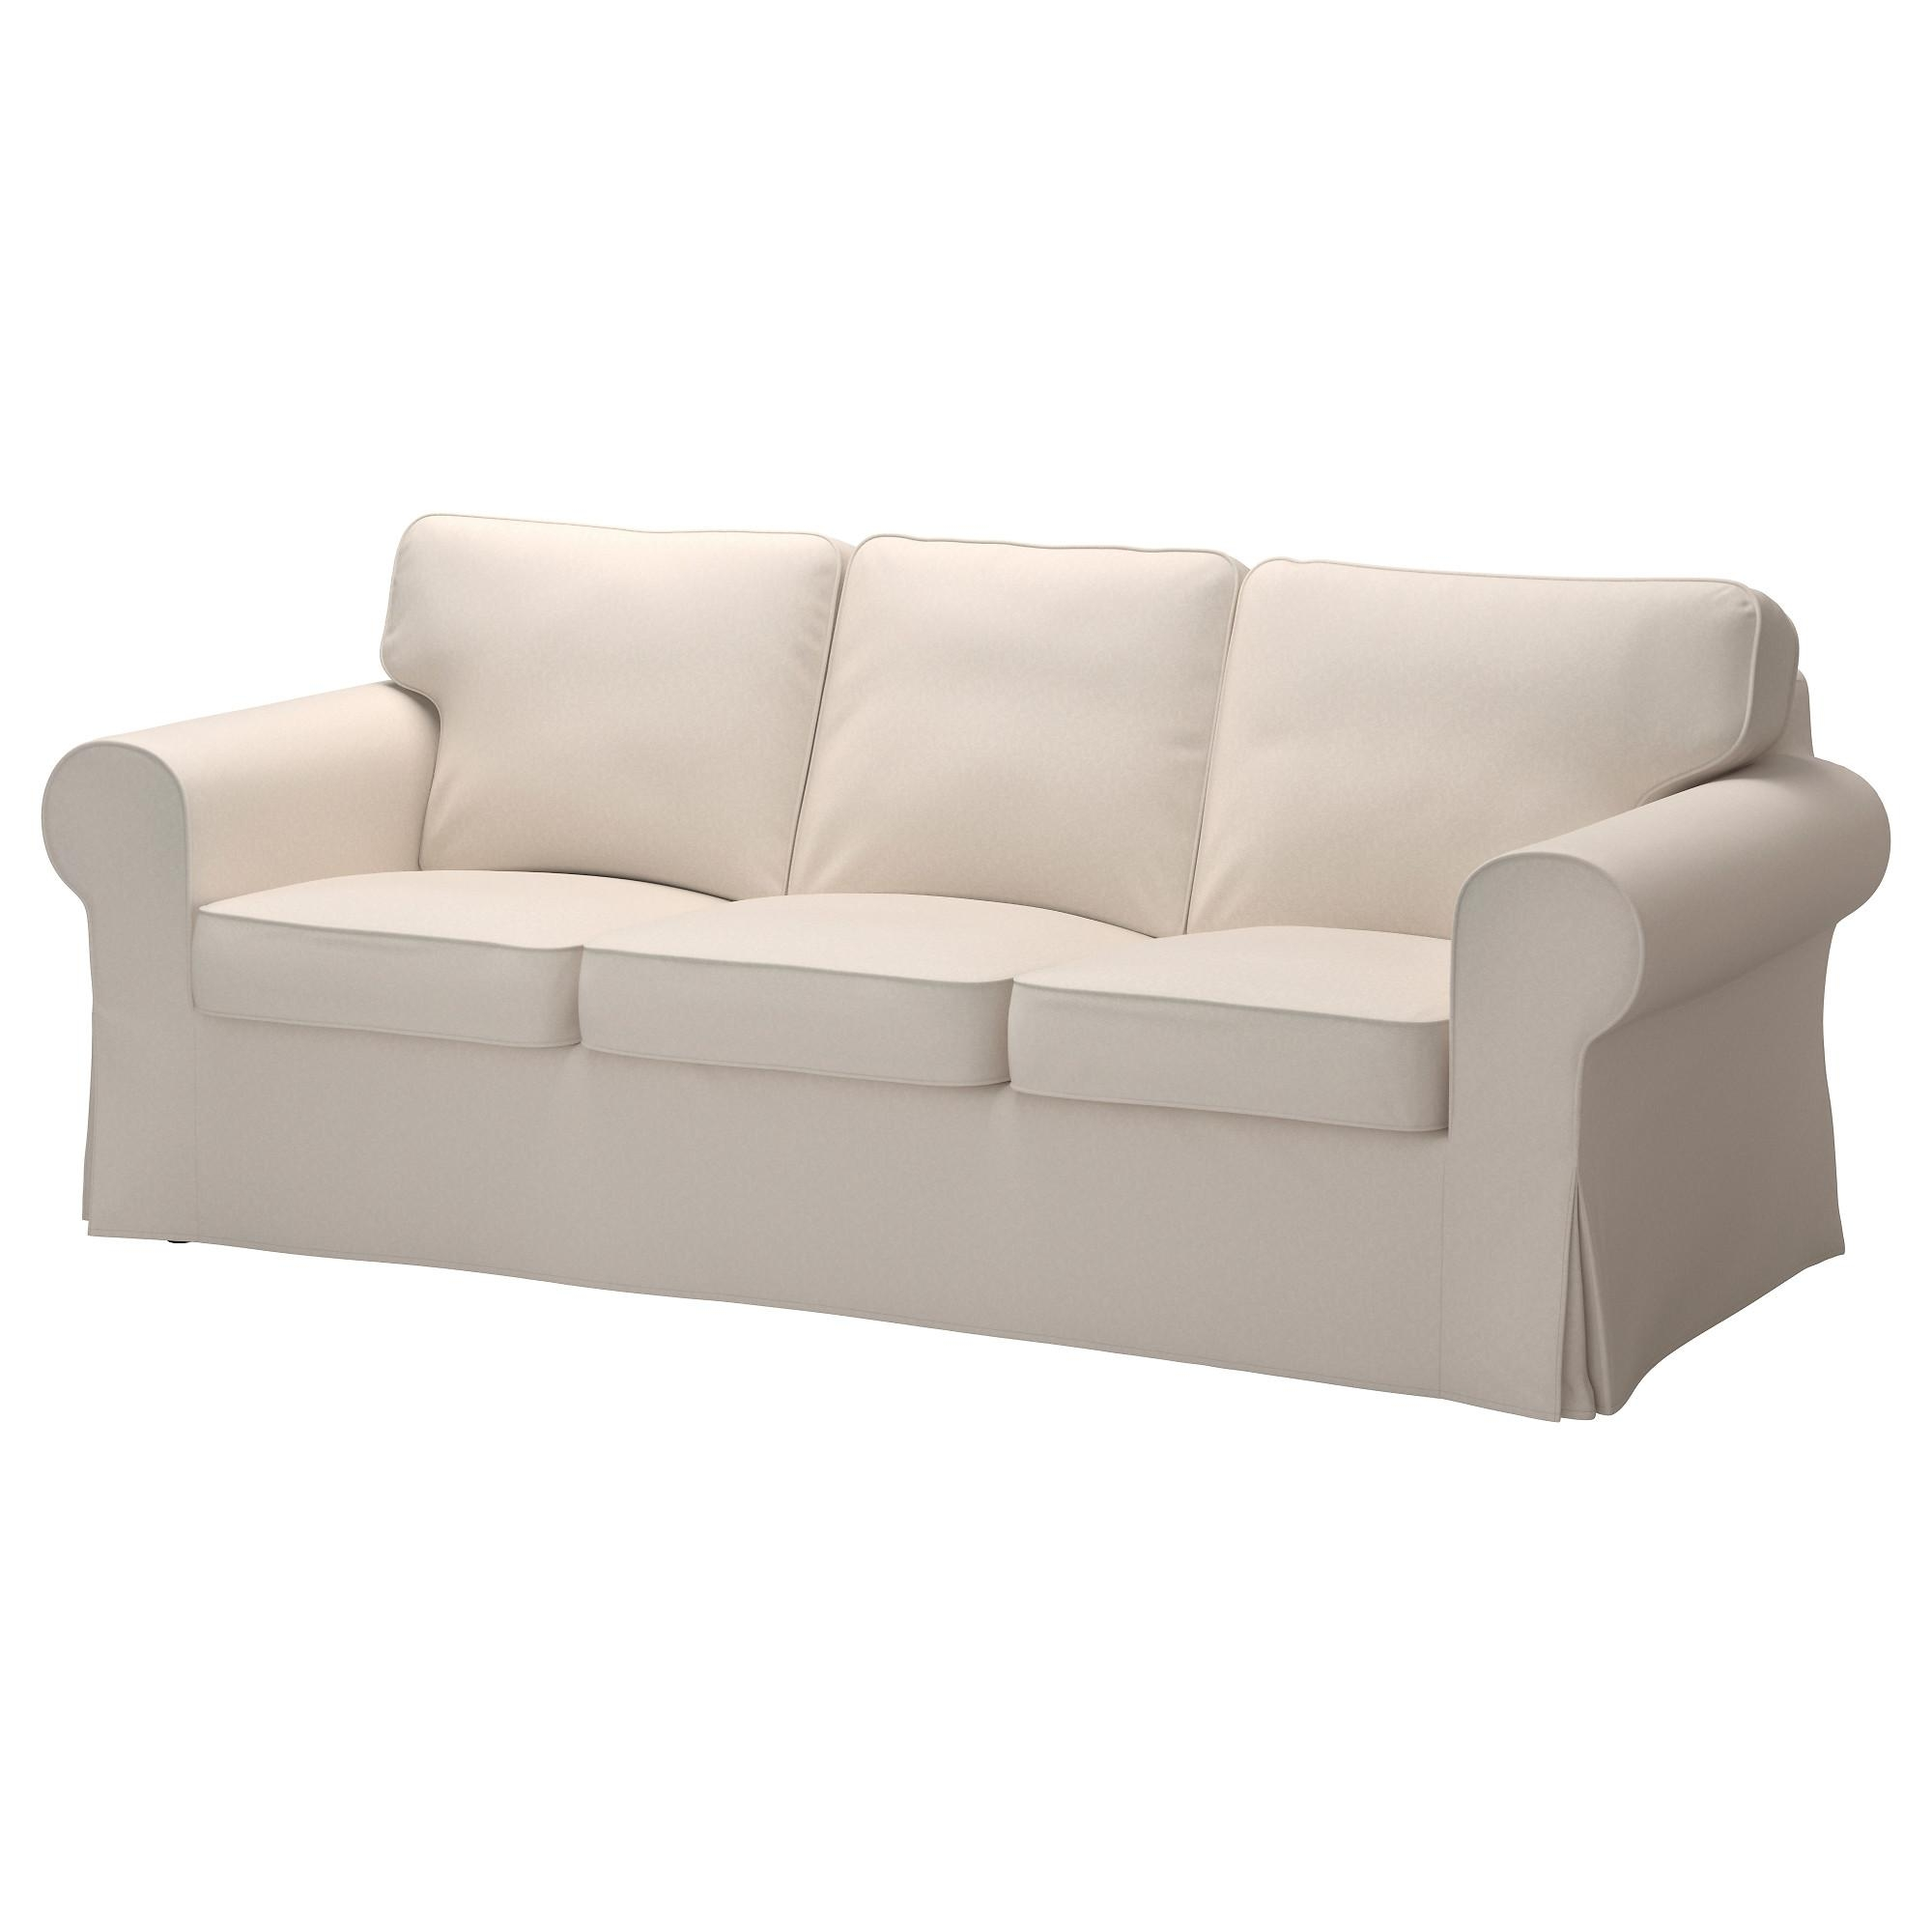 Fabric Sofas – Modern & Contemporary – Ikea Regarding Contemporary Fabric Sofas (Image 11 of 20)